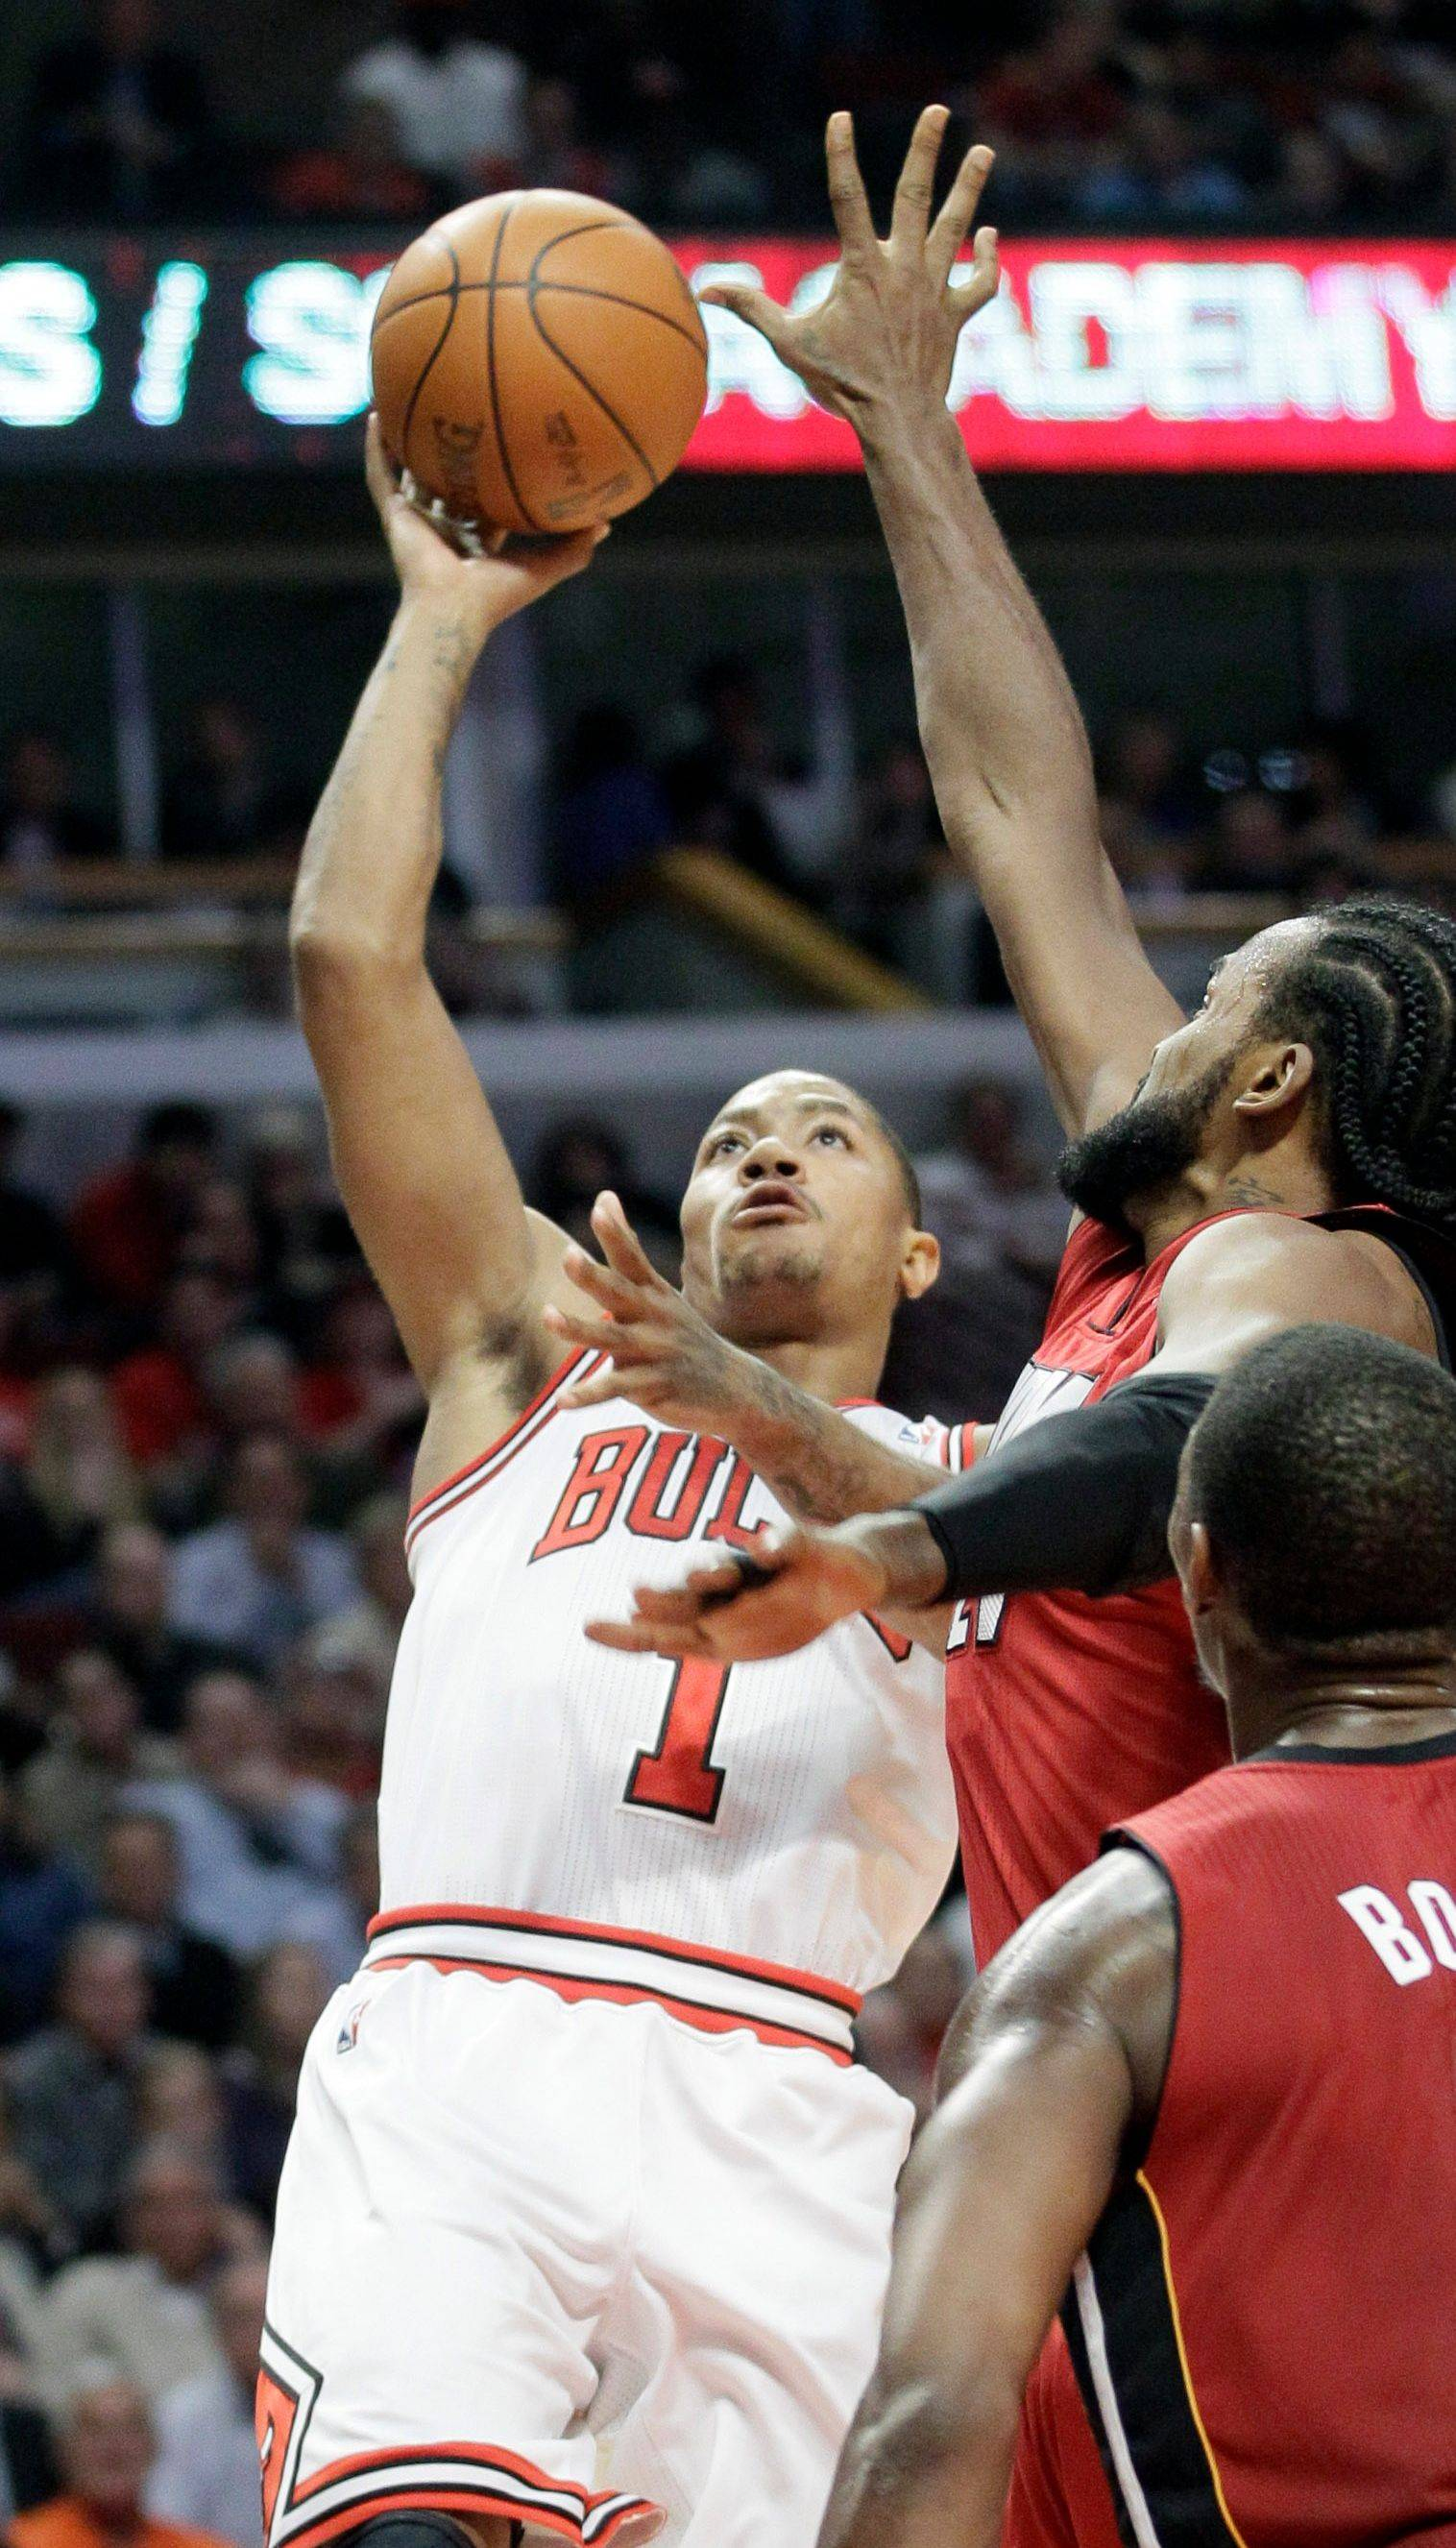 Bothered by a sprained ankle, the Bulls' Derrick Rose, left, scored just 2 points Thursday on 1-of-13 shooting against the Heat at the United Center.